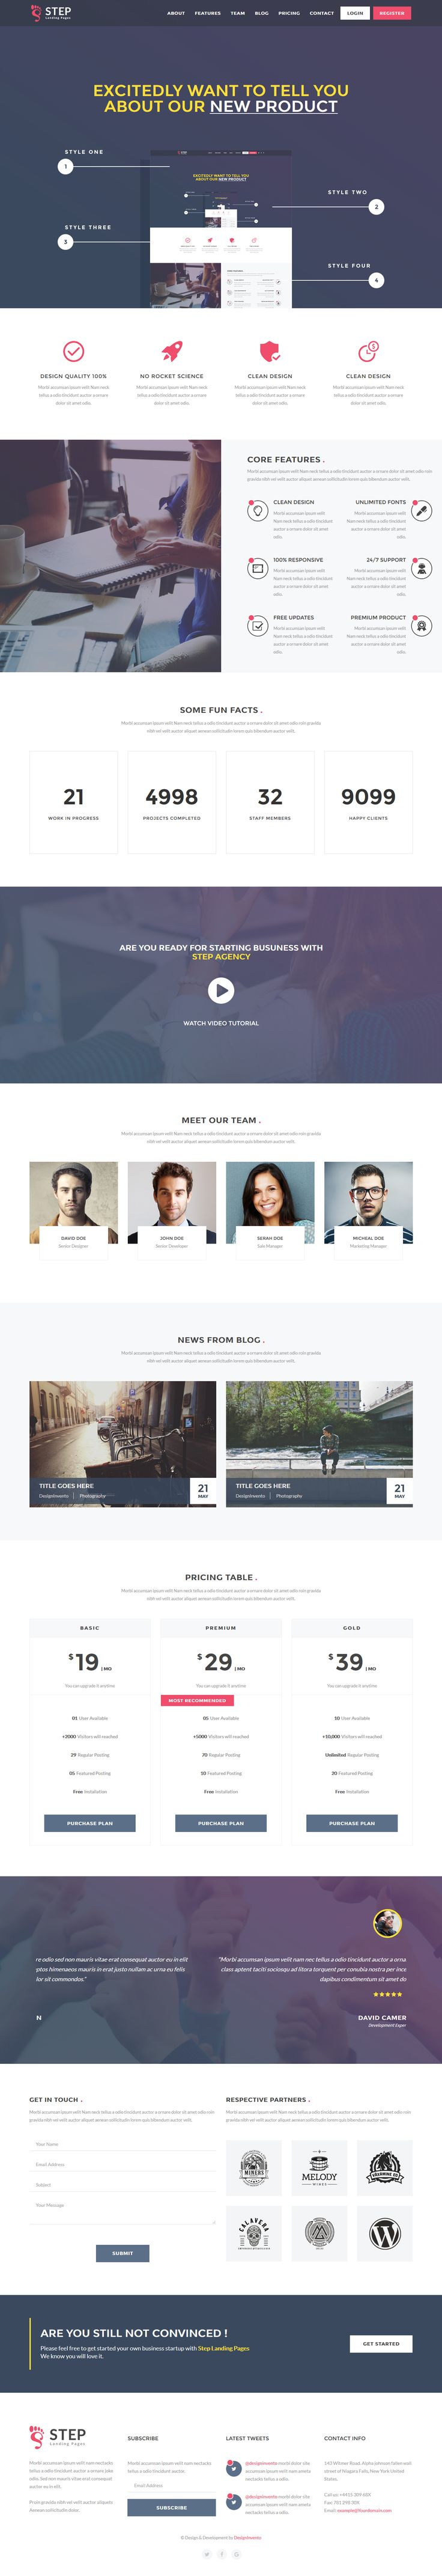 Step - Startup HTML Landing Page Template. Live Preview & Download: https://themeforest.net/item/step-startup-html-landing-page-template/16692048?ref=ksioks